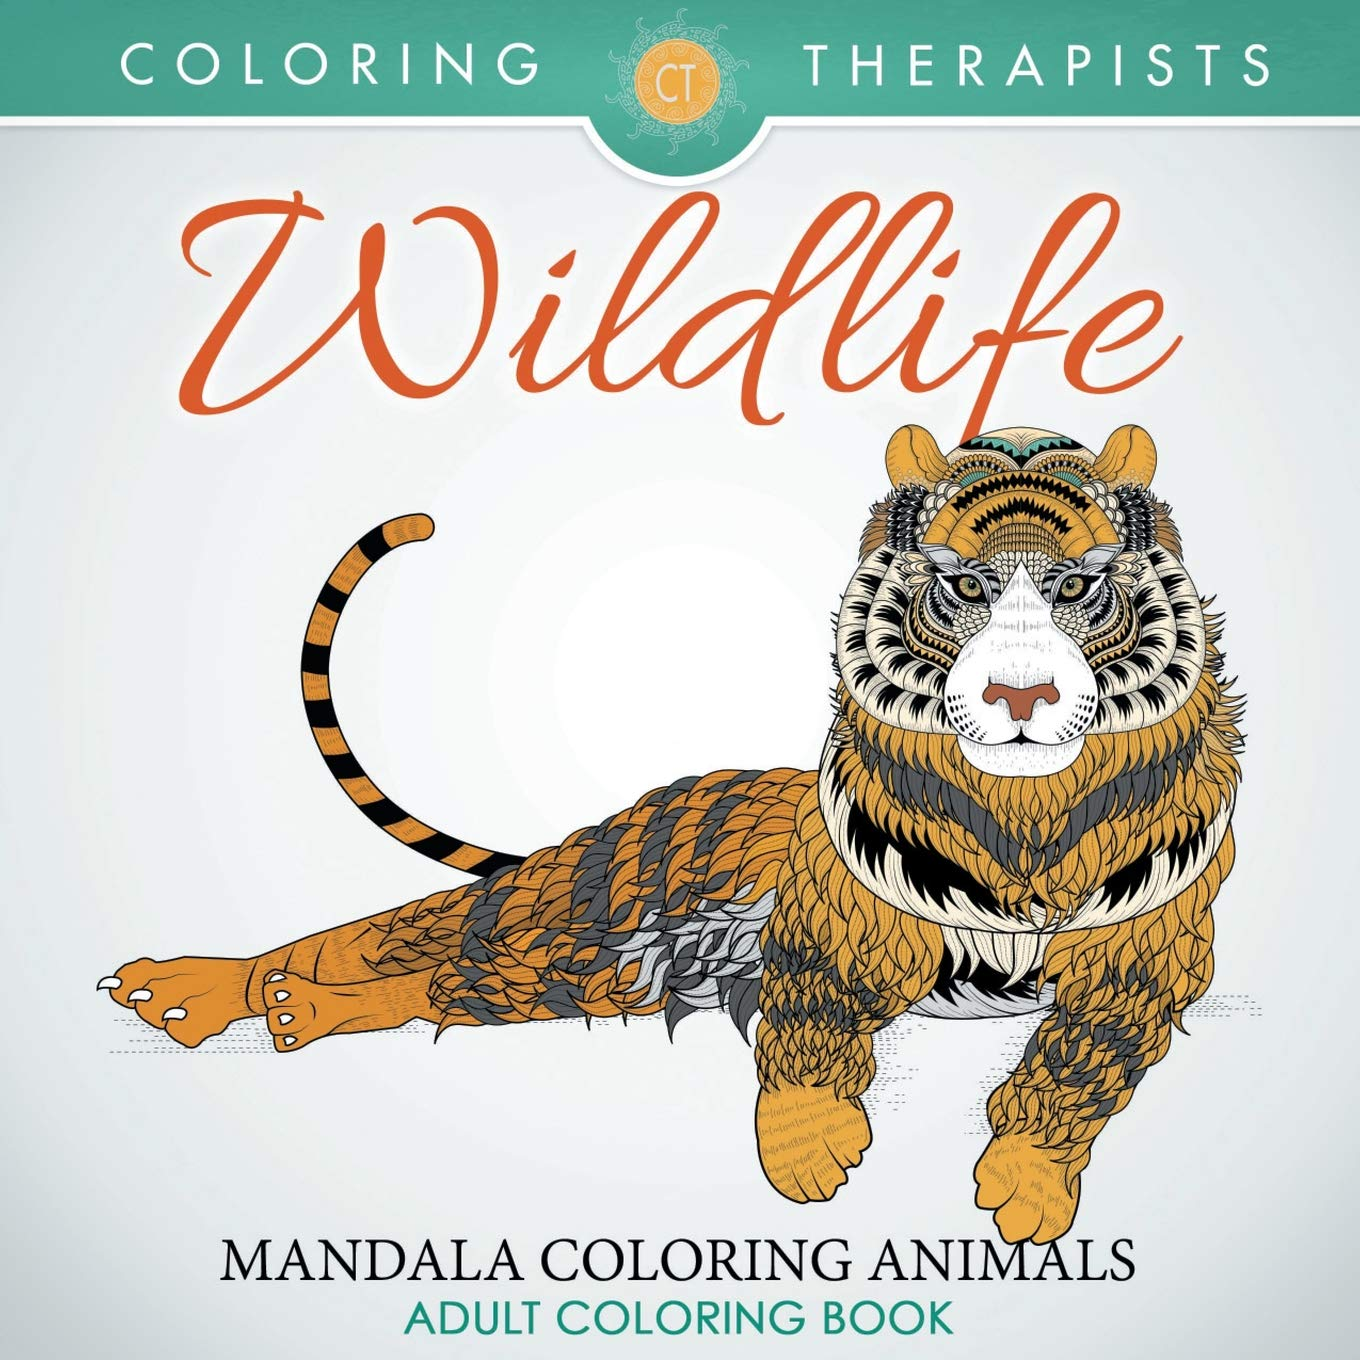 Wildlife: Mandala Coloring Animals - Adult Coloring Book: Amazon.es: Coloring Therapist: Libros en idiomas extranjeros